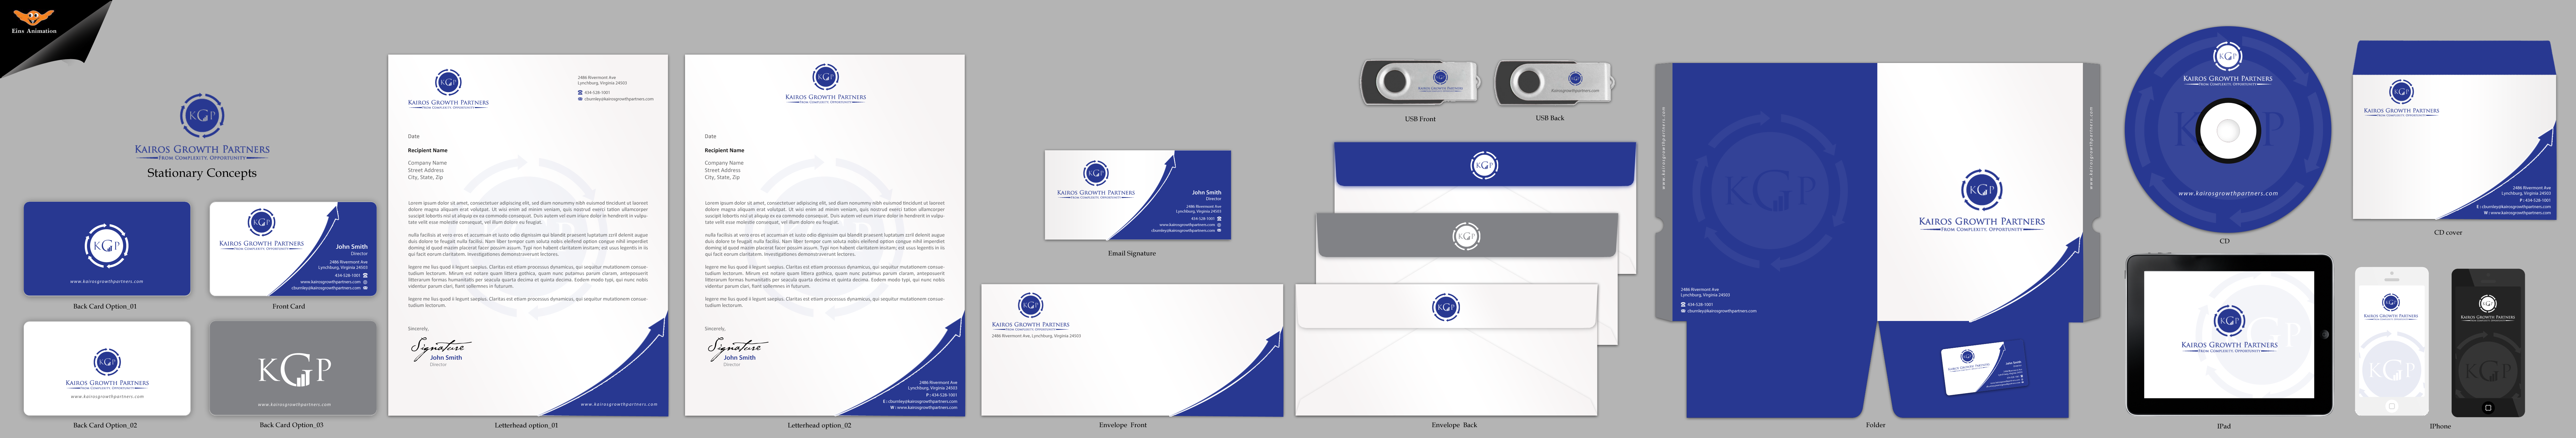 Kairos Growth Partners Business Cards, Stationary and Envelops - Business Opportunities